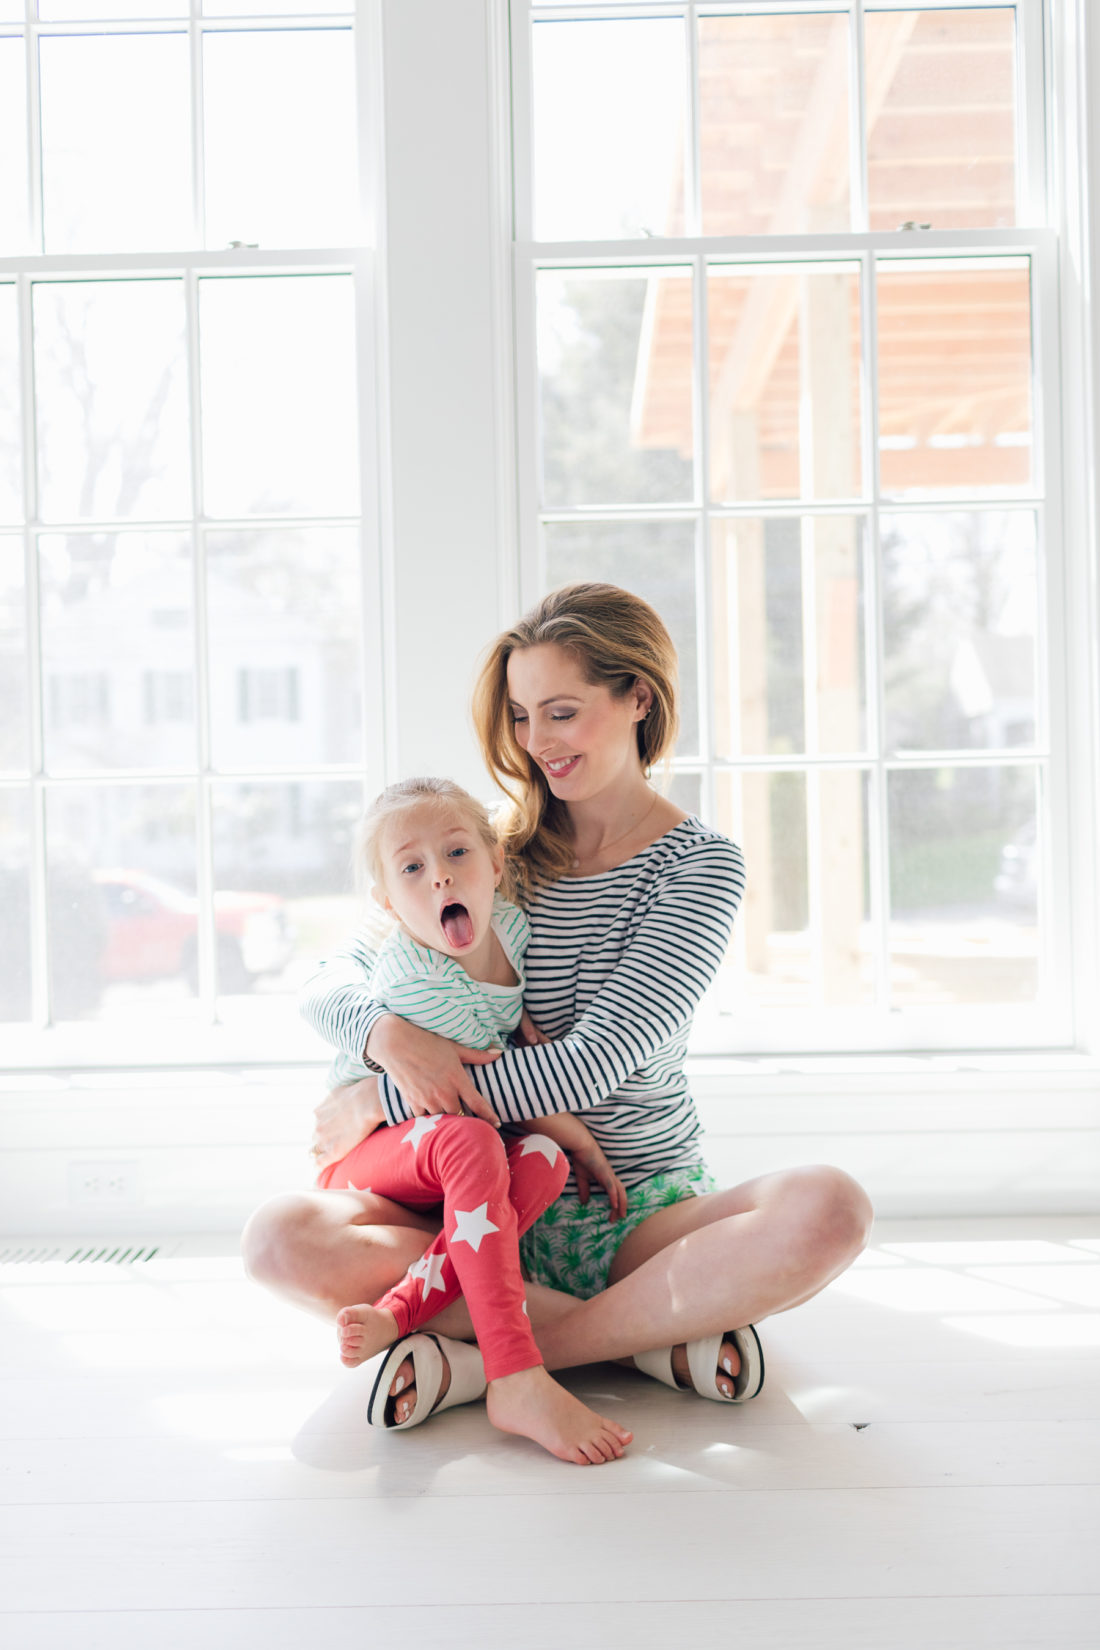 Eva Amurri Martino of Happily Eva After cradles her daughter Marlowe on the floor of their new home in Connecticut